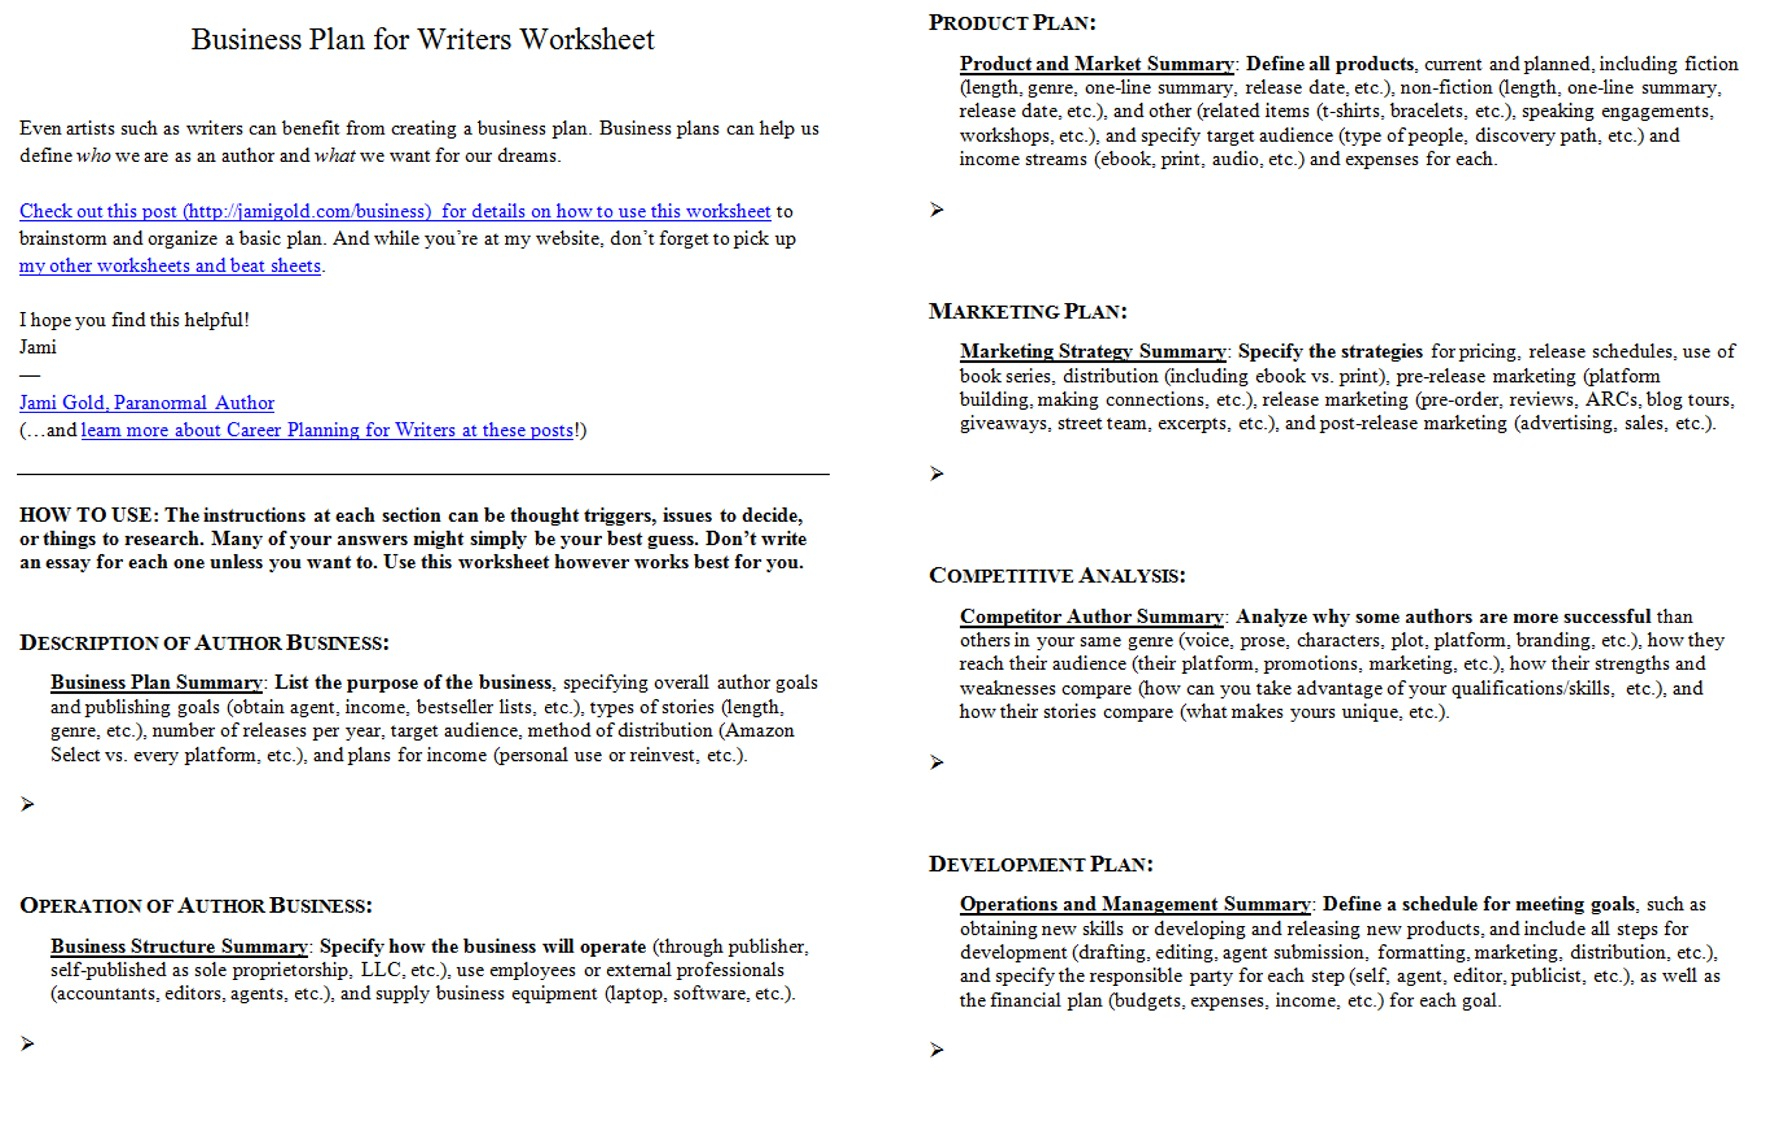 Proatmealus  Sweet Worksheets For Writers  Jami Gold Paranormal Author With Exciting Screen Shot Of Both Pages Of The Business Plan For Writers Worksheet With Divine Time Conversion Worksheet Also Sylvester And The Magic Pebble Worksheets In Addition United States Worksheet And Present Tense Of Er And Ir Verbs In Spanish Worksheet As Well As Graphing Exponential Growth And Decay Worksheet Additionally Proportion Worksheet Th Grade From Jamigoldcom With Proatmealus  Exciting Worksheets For Writers  Jami Gold Paranormal Author With Divine Screen Shot Of Both Pages Of The Business Plan For Writers Worksheet And Sweet Time Conversion Worksheet Also Sylvester And The Magic Pebble Worksheets In Addition United States Worksheet From Jamigoldcom